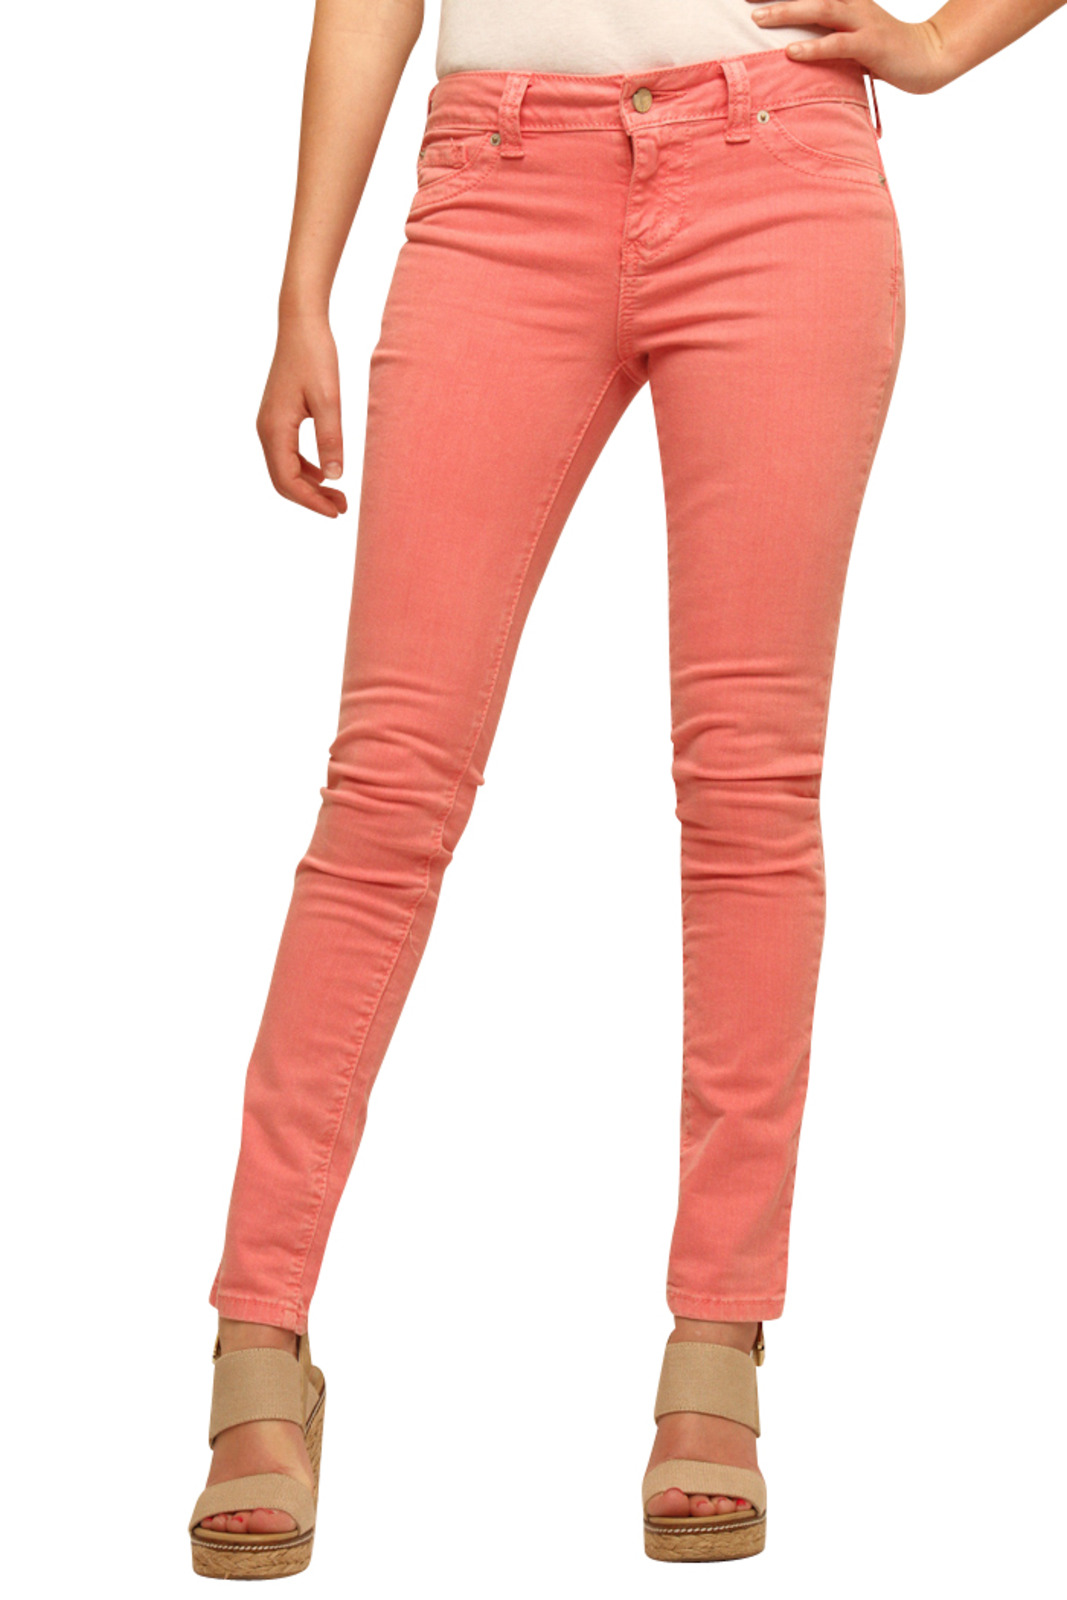 Standards & Practices Salmon Jeans from Miami by Prinzzesa ...